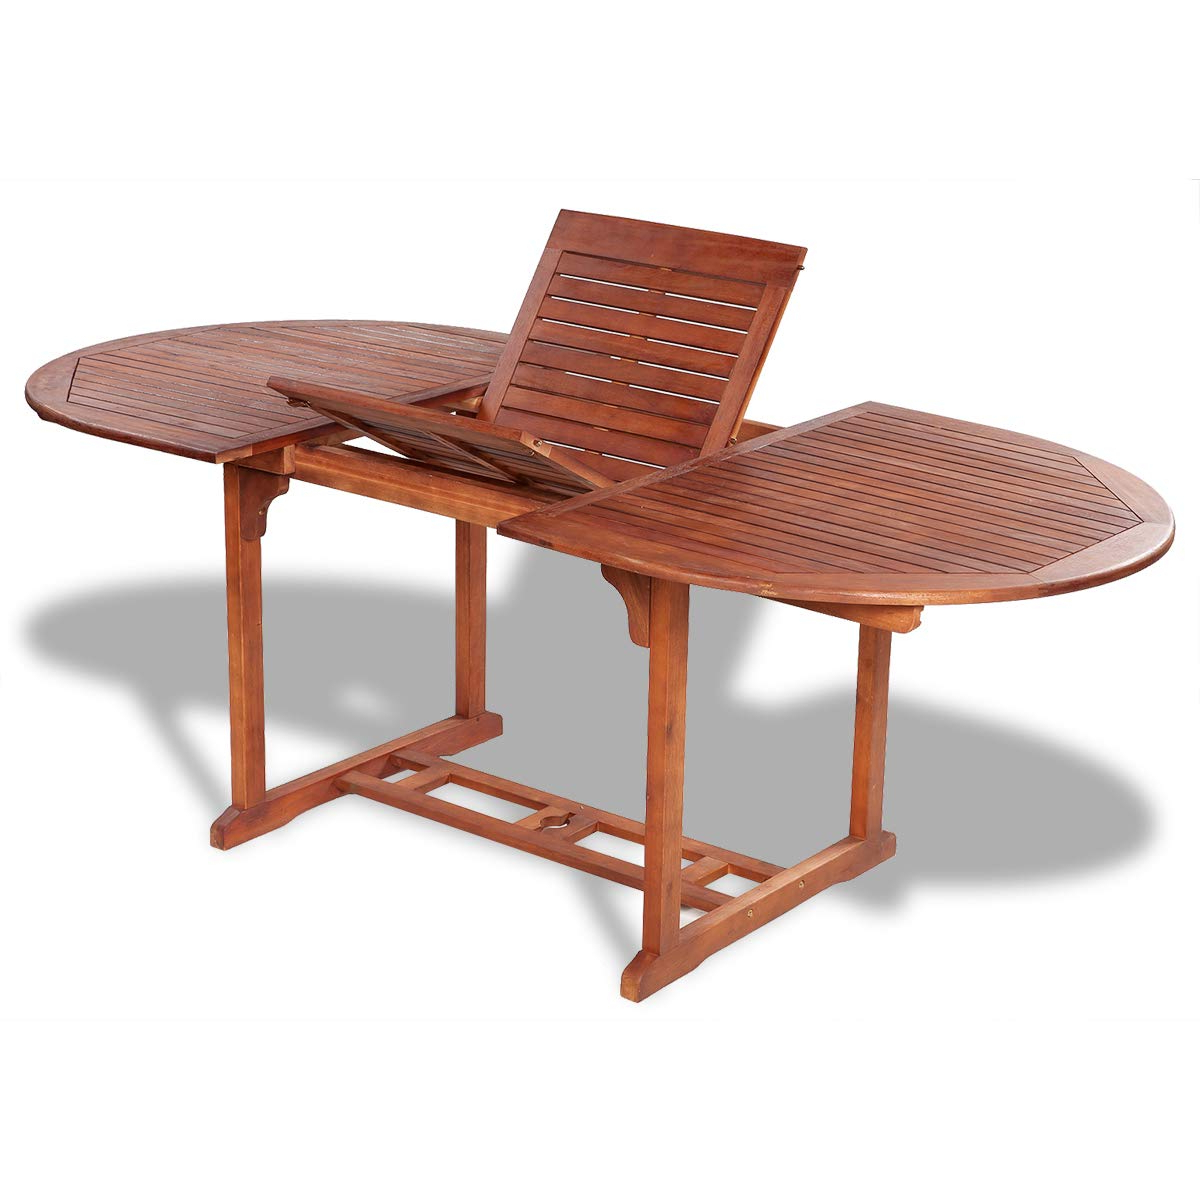 Amazon: Vidaxl Solid Acacia Wood Outdoor Dining Table Throughout Latest Solid Acacia Wood Dining Tables (View 10 of 25)